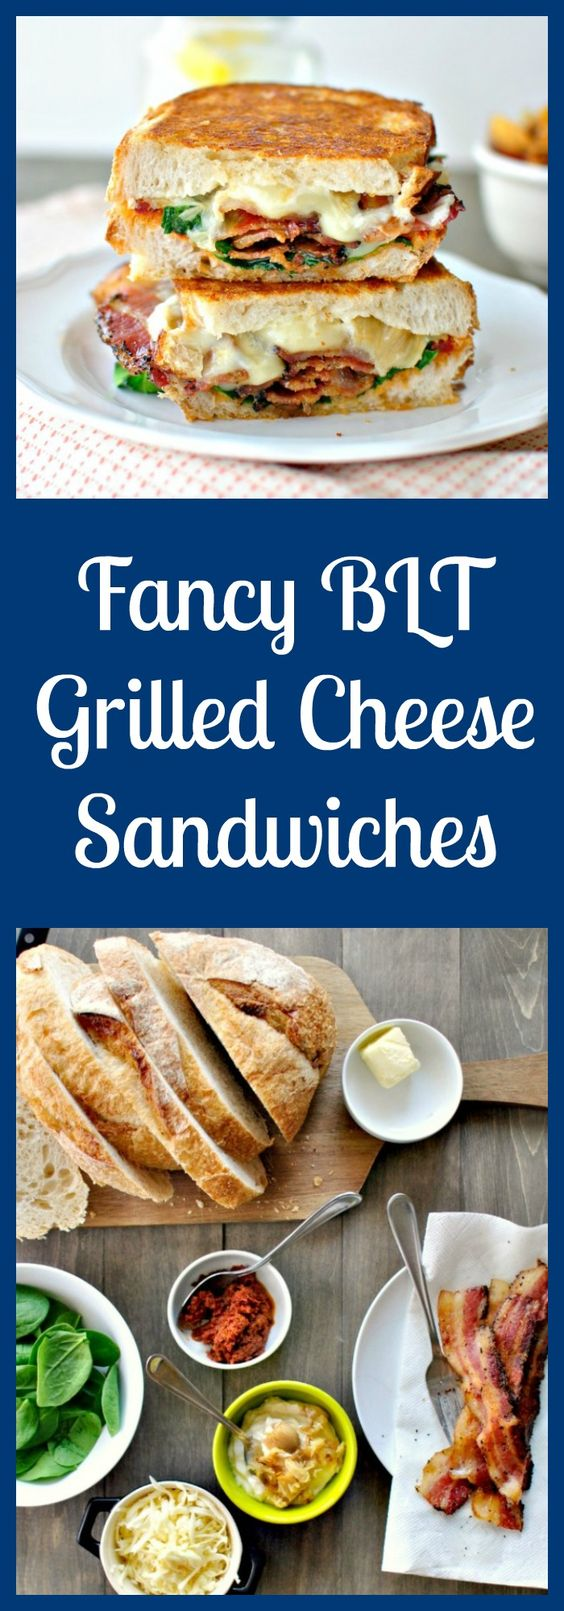 A fancy twist on a BLT. Griddled until golden and gooey with Fontina cheese. From @lauriemc6